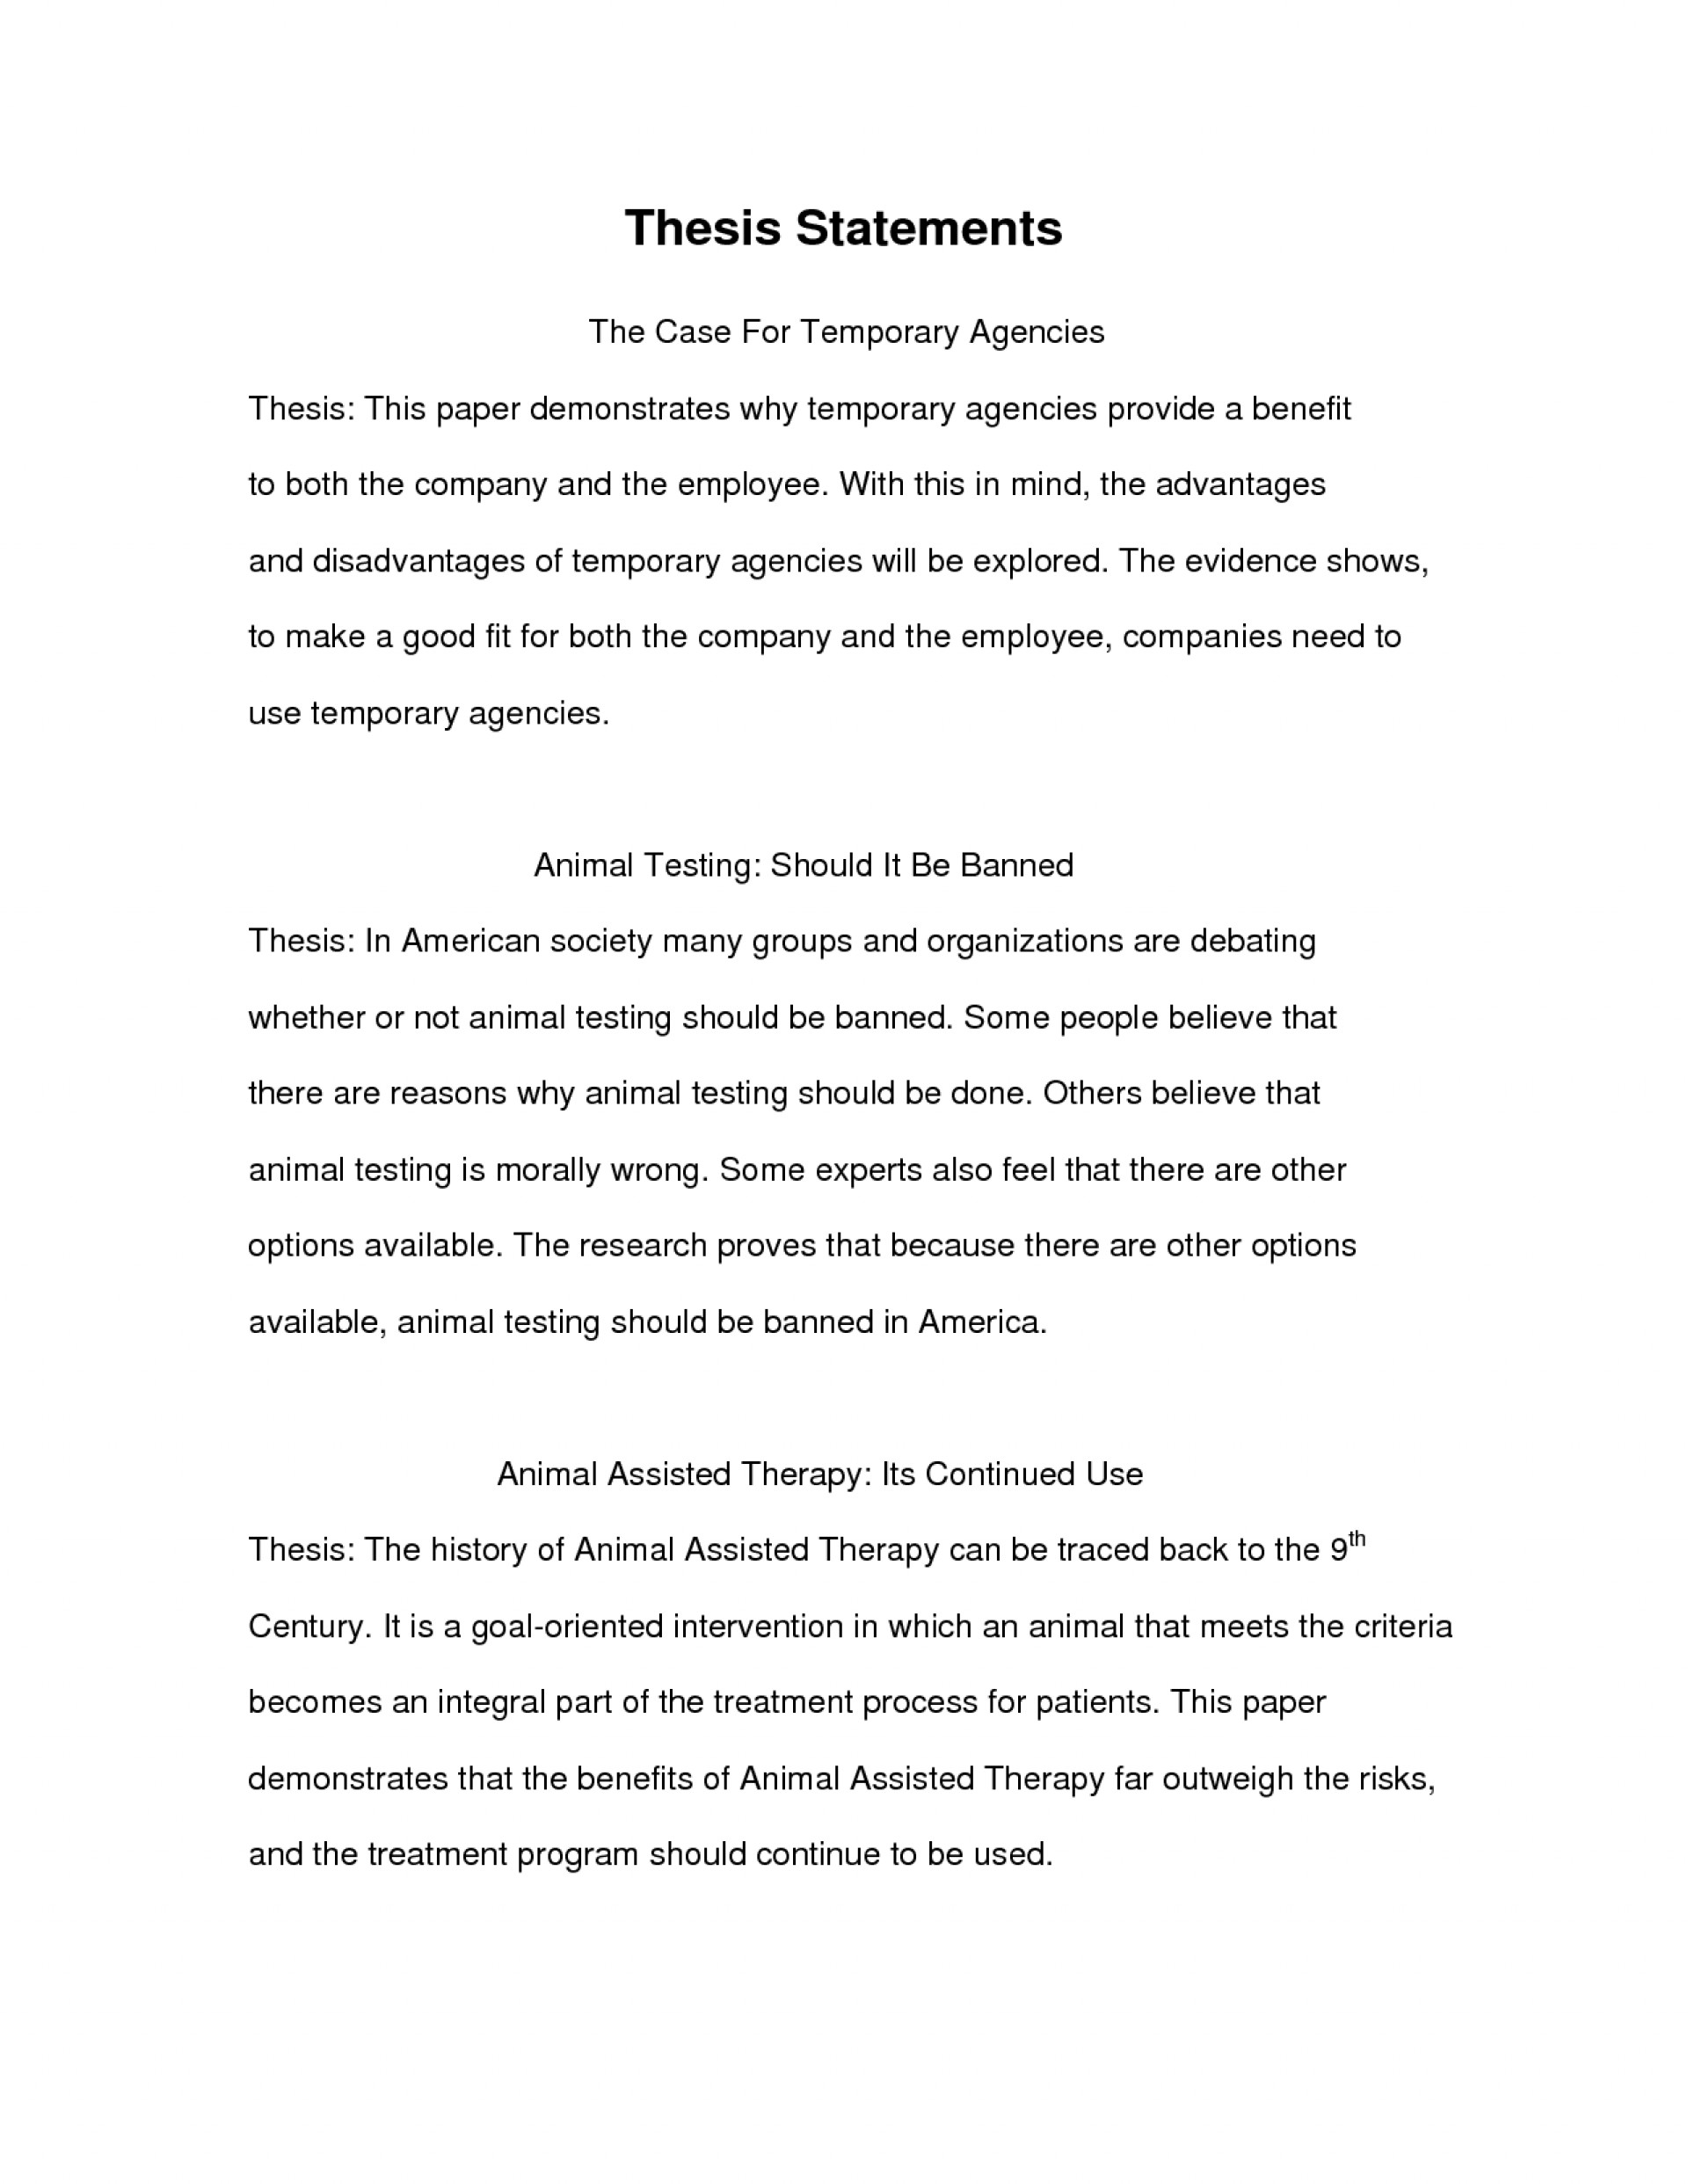 004 Thesis Statement For Research Paper On Abortion Breast Cancer Essay Template Bfnmxz7cfv Examples Of In An How To Unique Write A Pdf Apa Format 1920